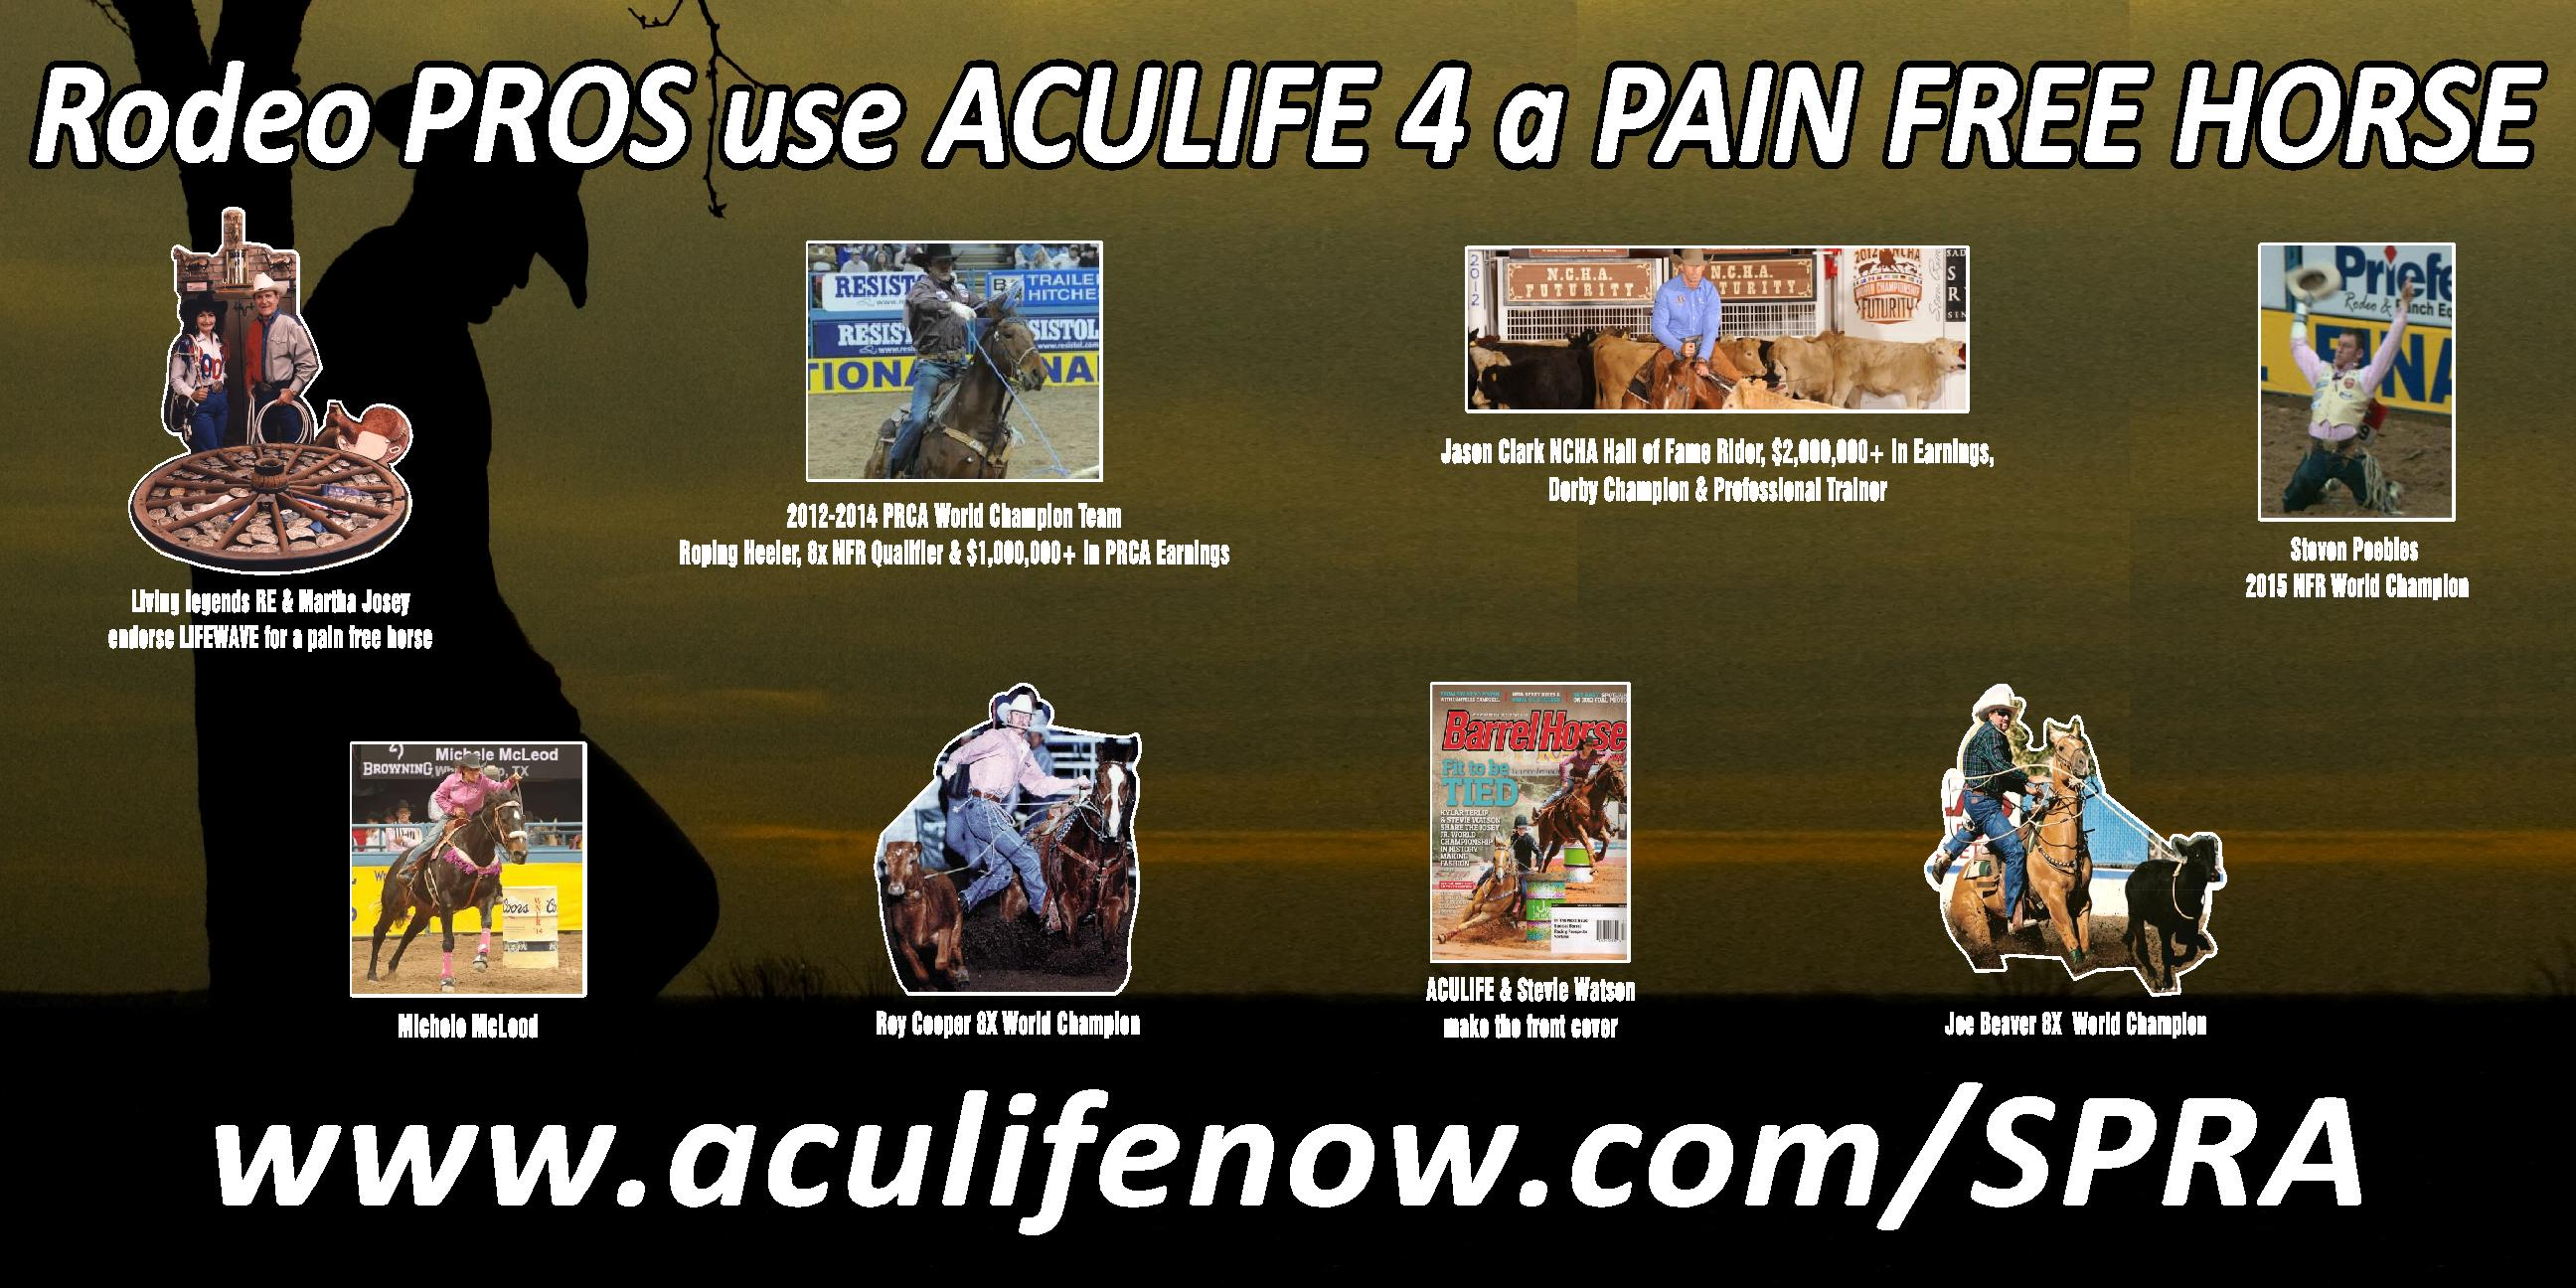 Opportunity Aculife By Lifewave Inc Aculifenow